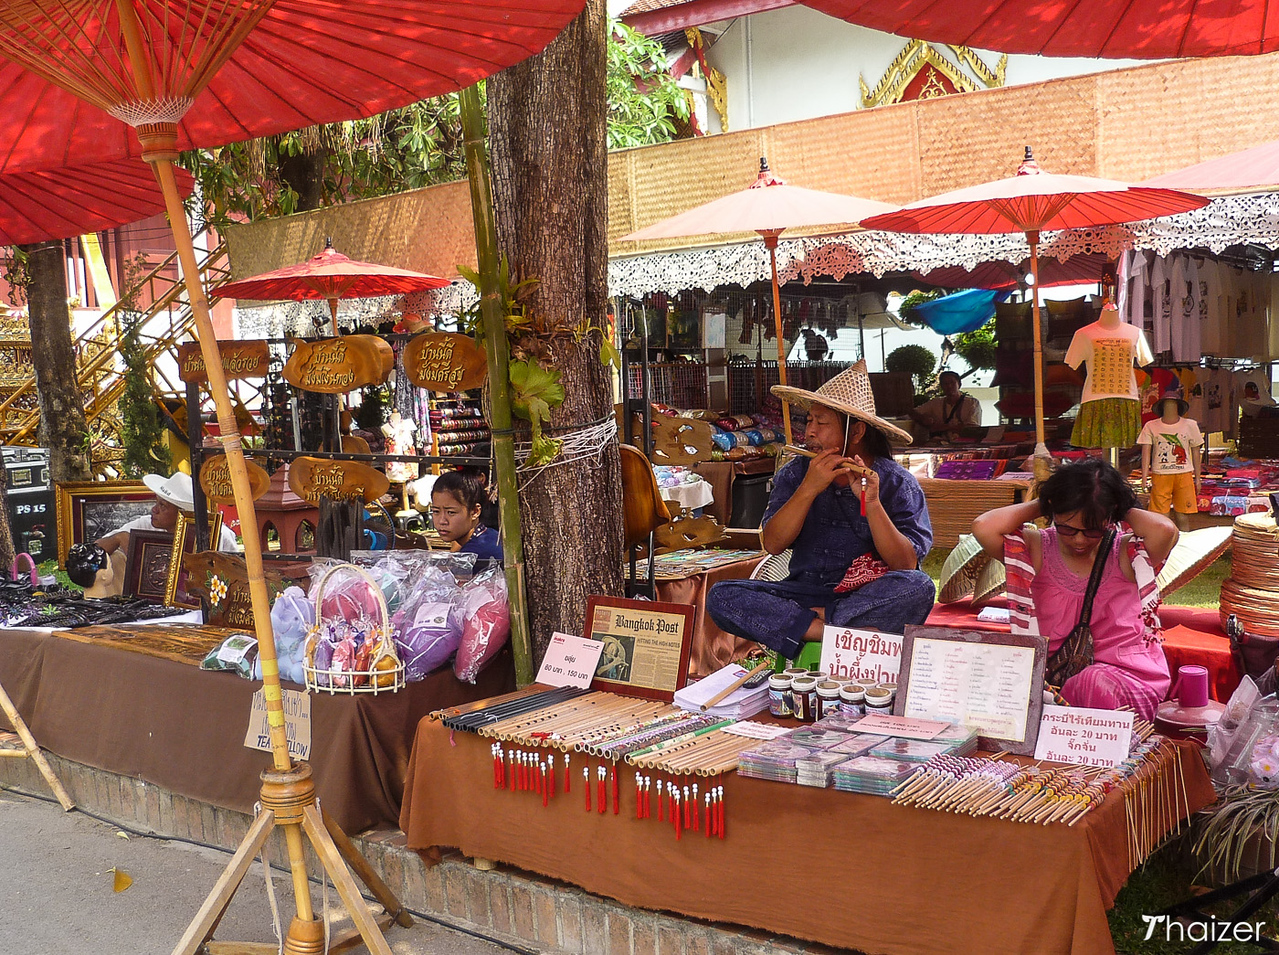 vendors on Sunday afternoon in Wat Phra Singh, Chiang Mai